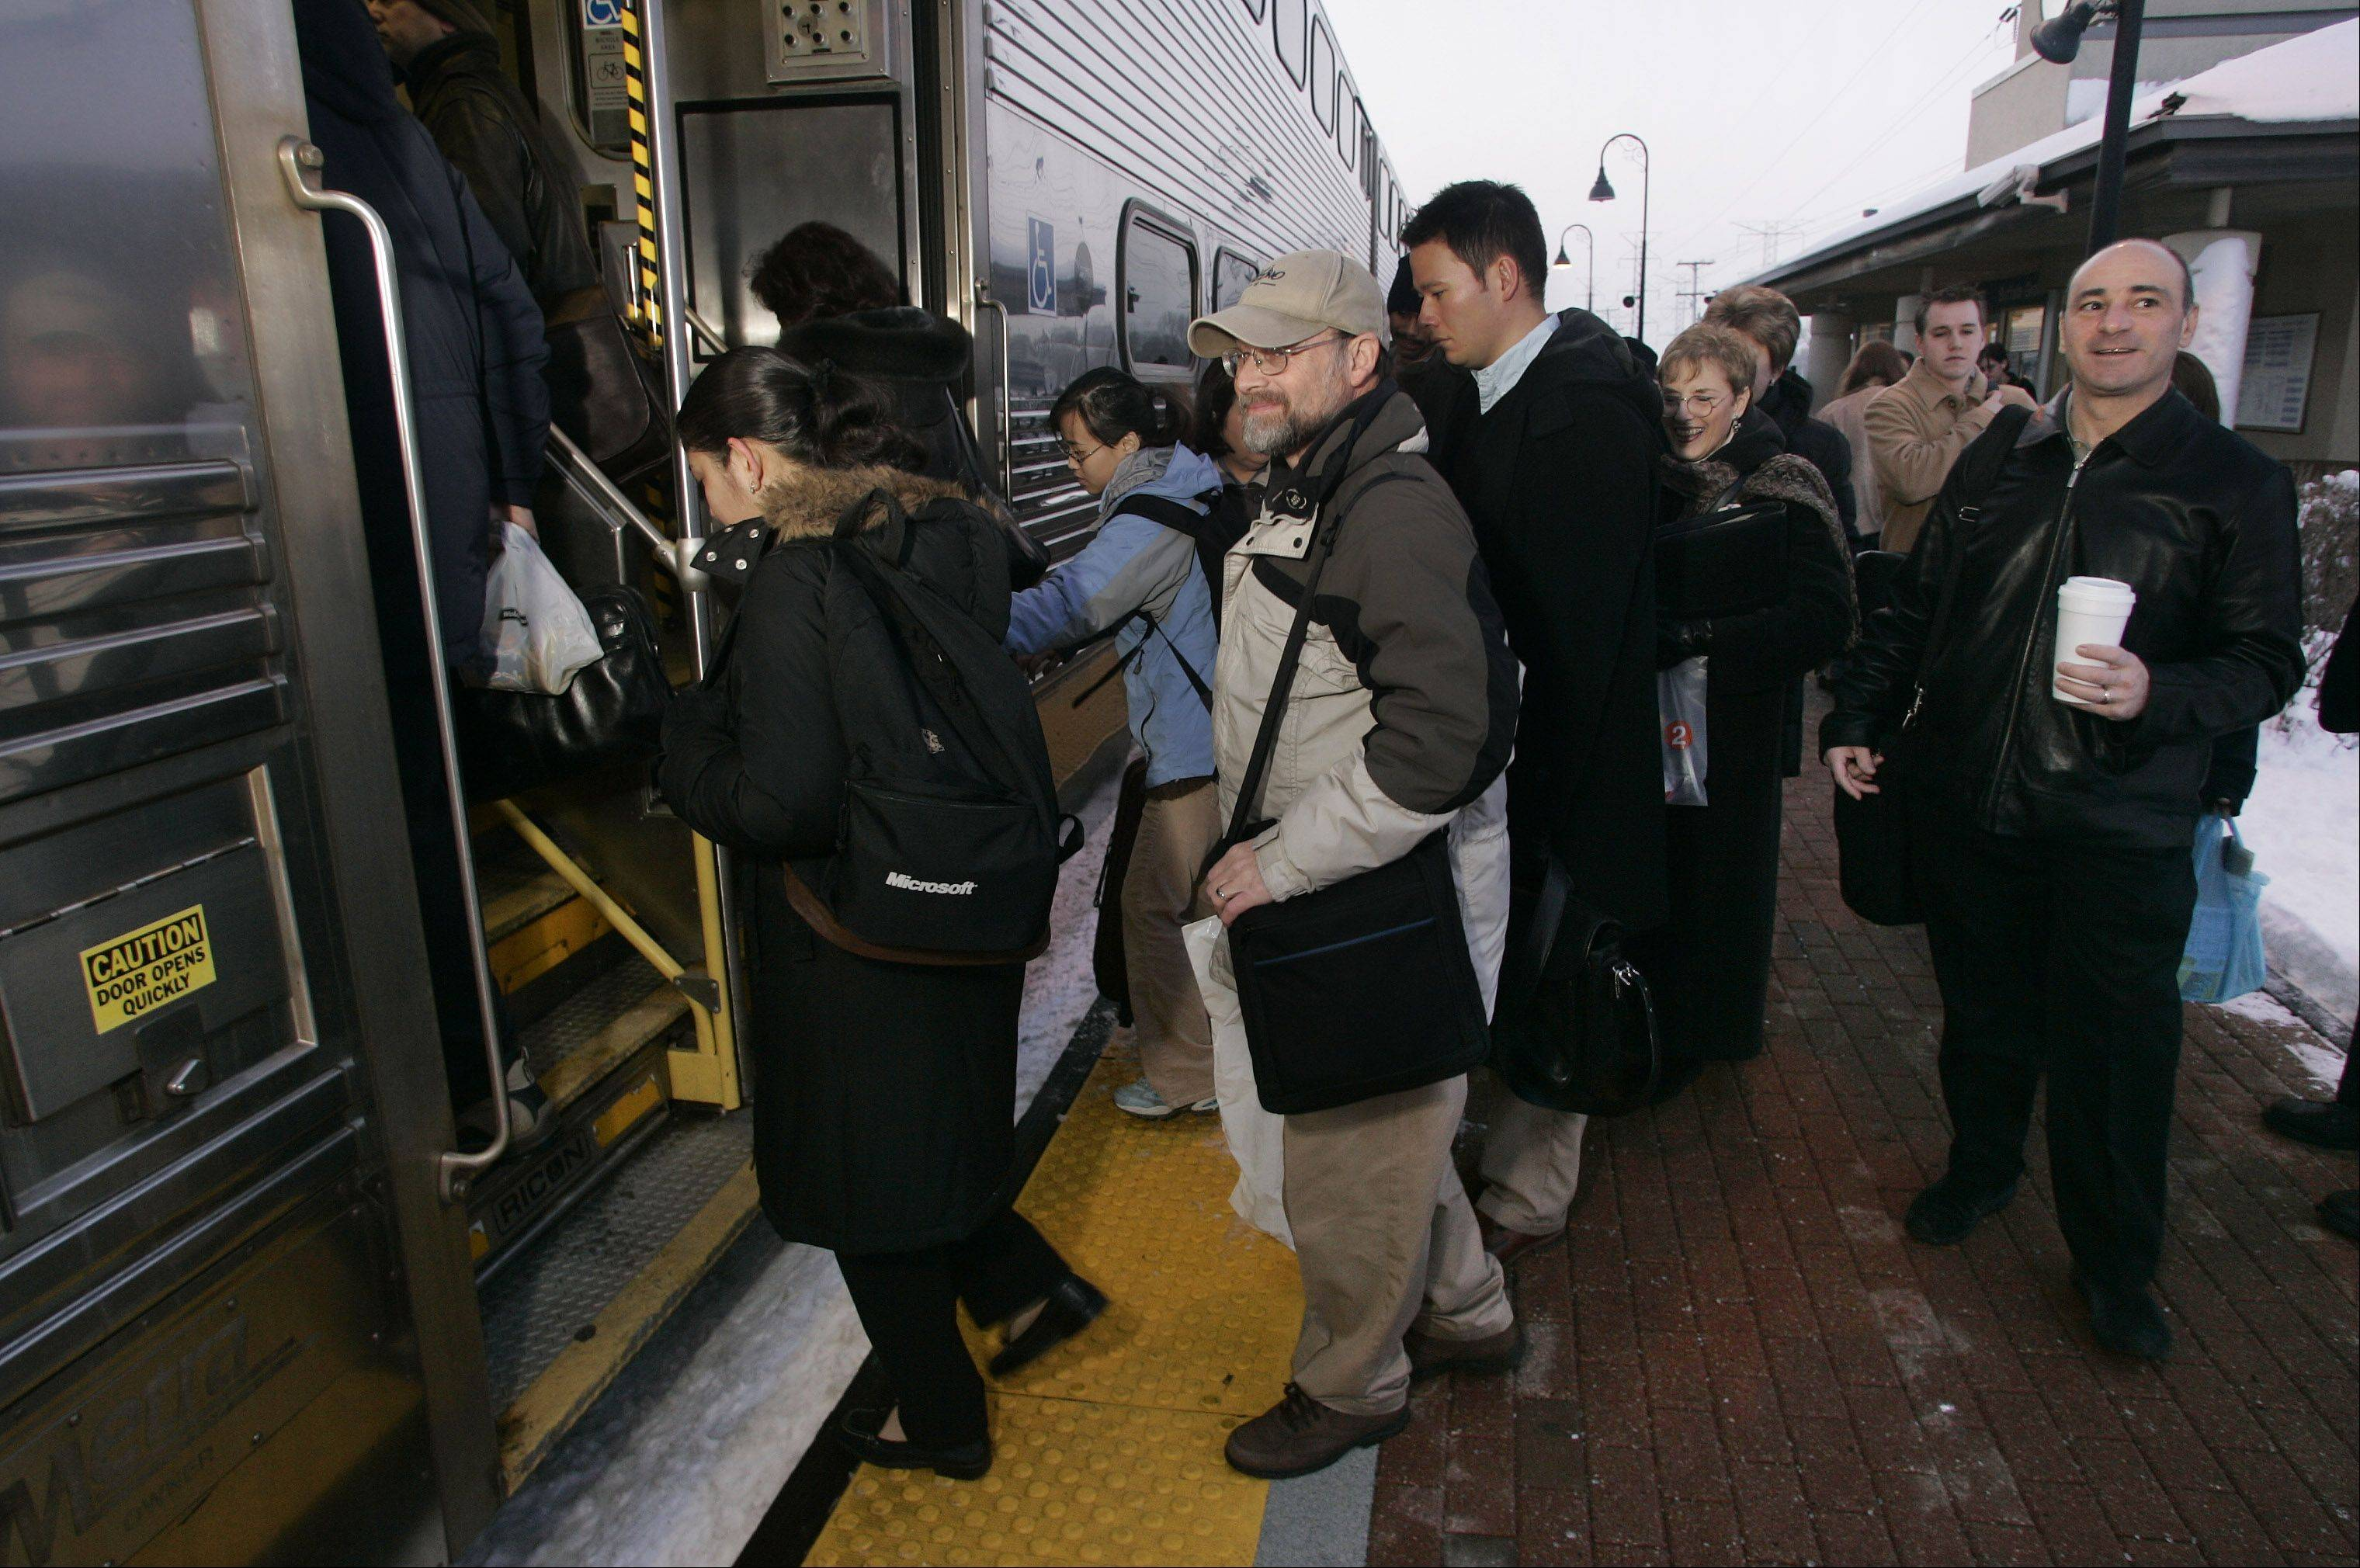 Passengers board the Metra commuter train at the Buffalo Grove Metra station. A study suggests pursuing housing opportunities that would appeal to younger populations in the area around the train station.